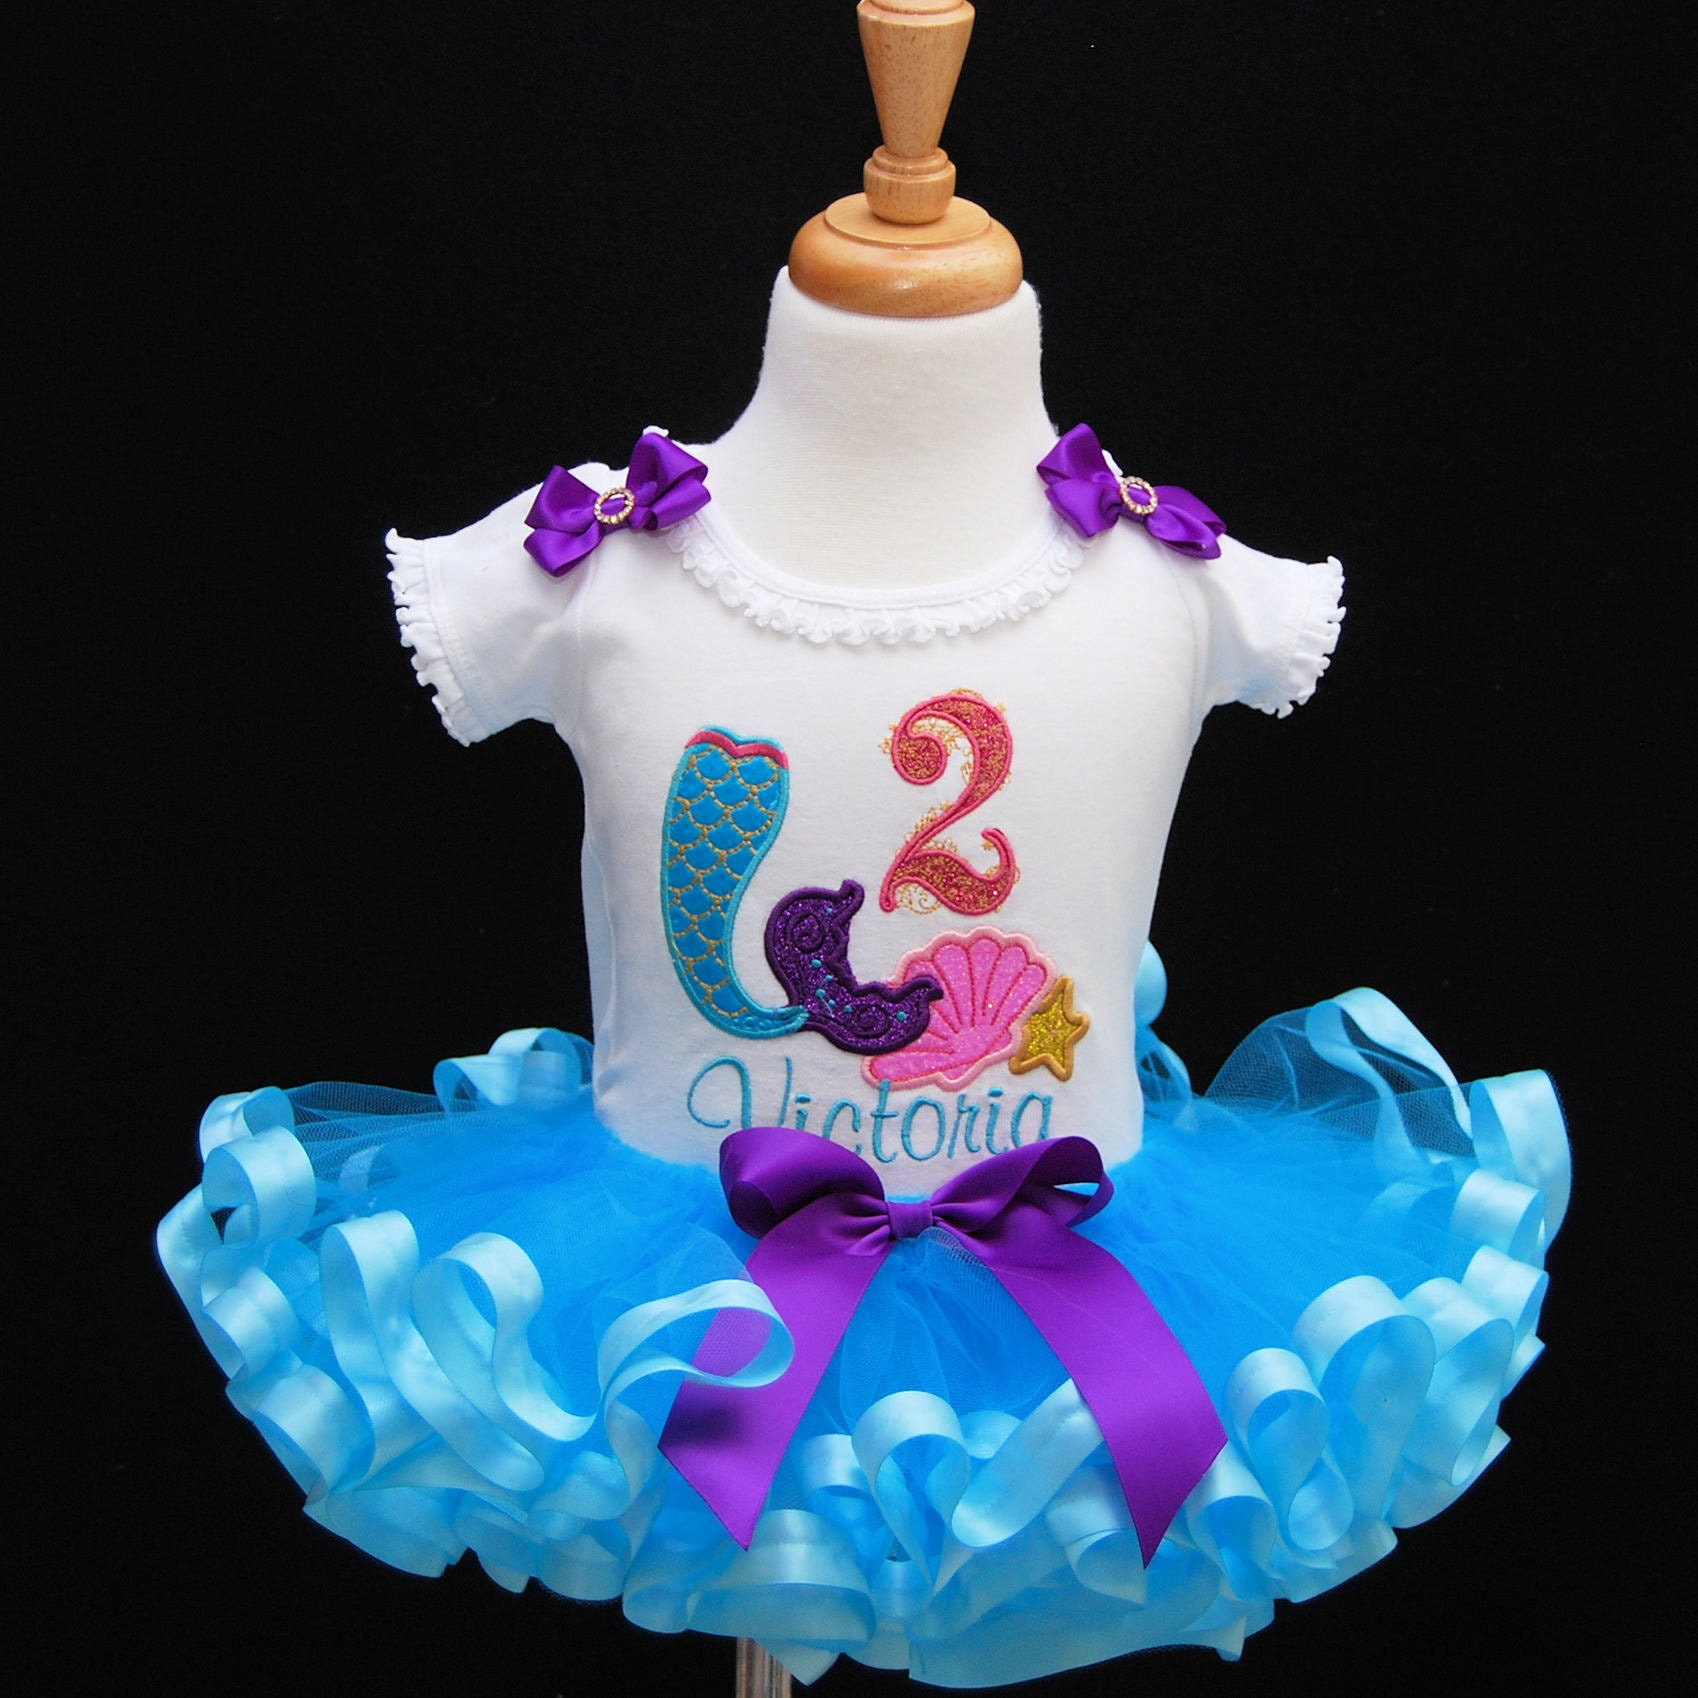 mermaid 2nd birthday outfit, personalized, 2nd birthday girl outfit, second birthday outfit girl, cake smash outfit, mermaid tail,